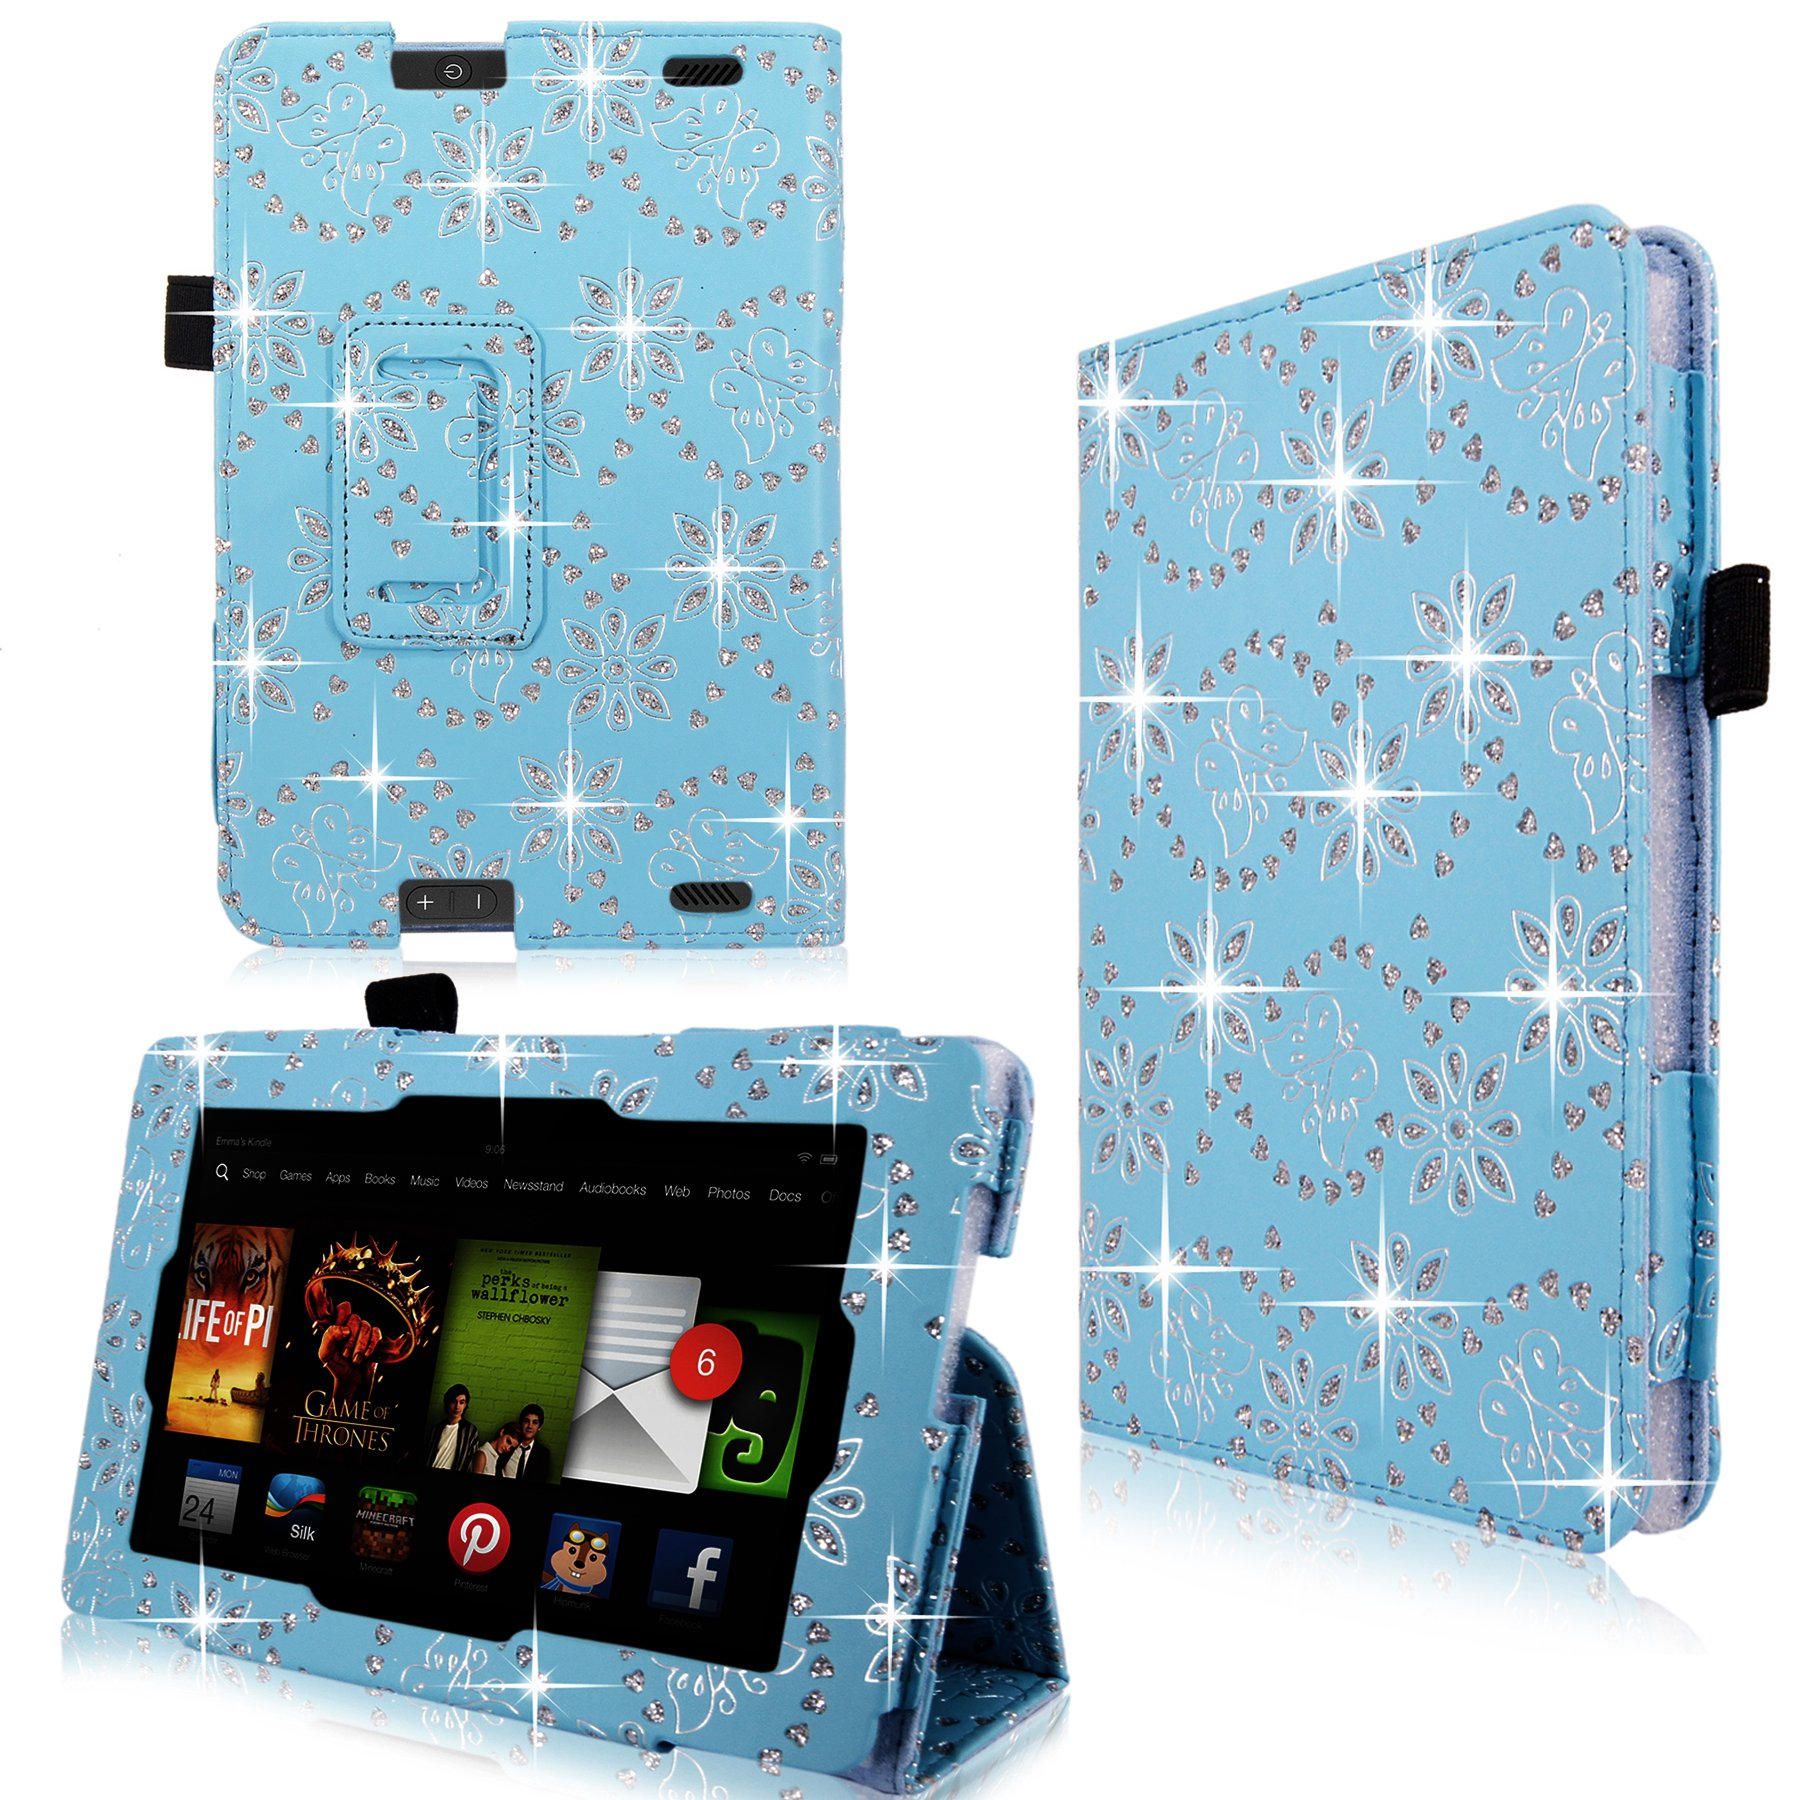 Cellularvilla Case for Amazon Kindle Fire HD 7'' 7 Inch 2013 Edition Baby Blue Glitter Pu Leather Flip Folio Stand Case Cover + Stylus Touch Pen